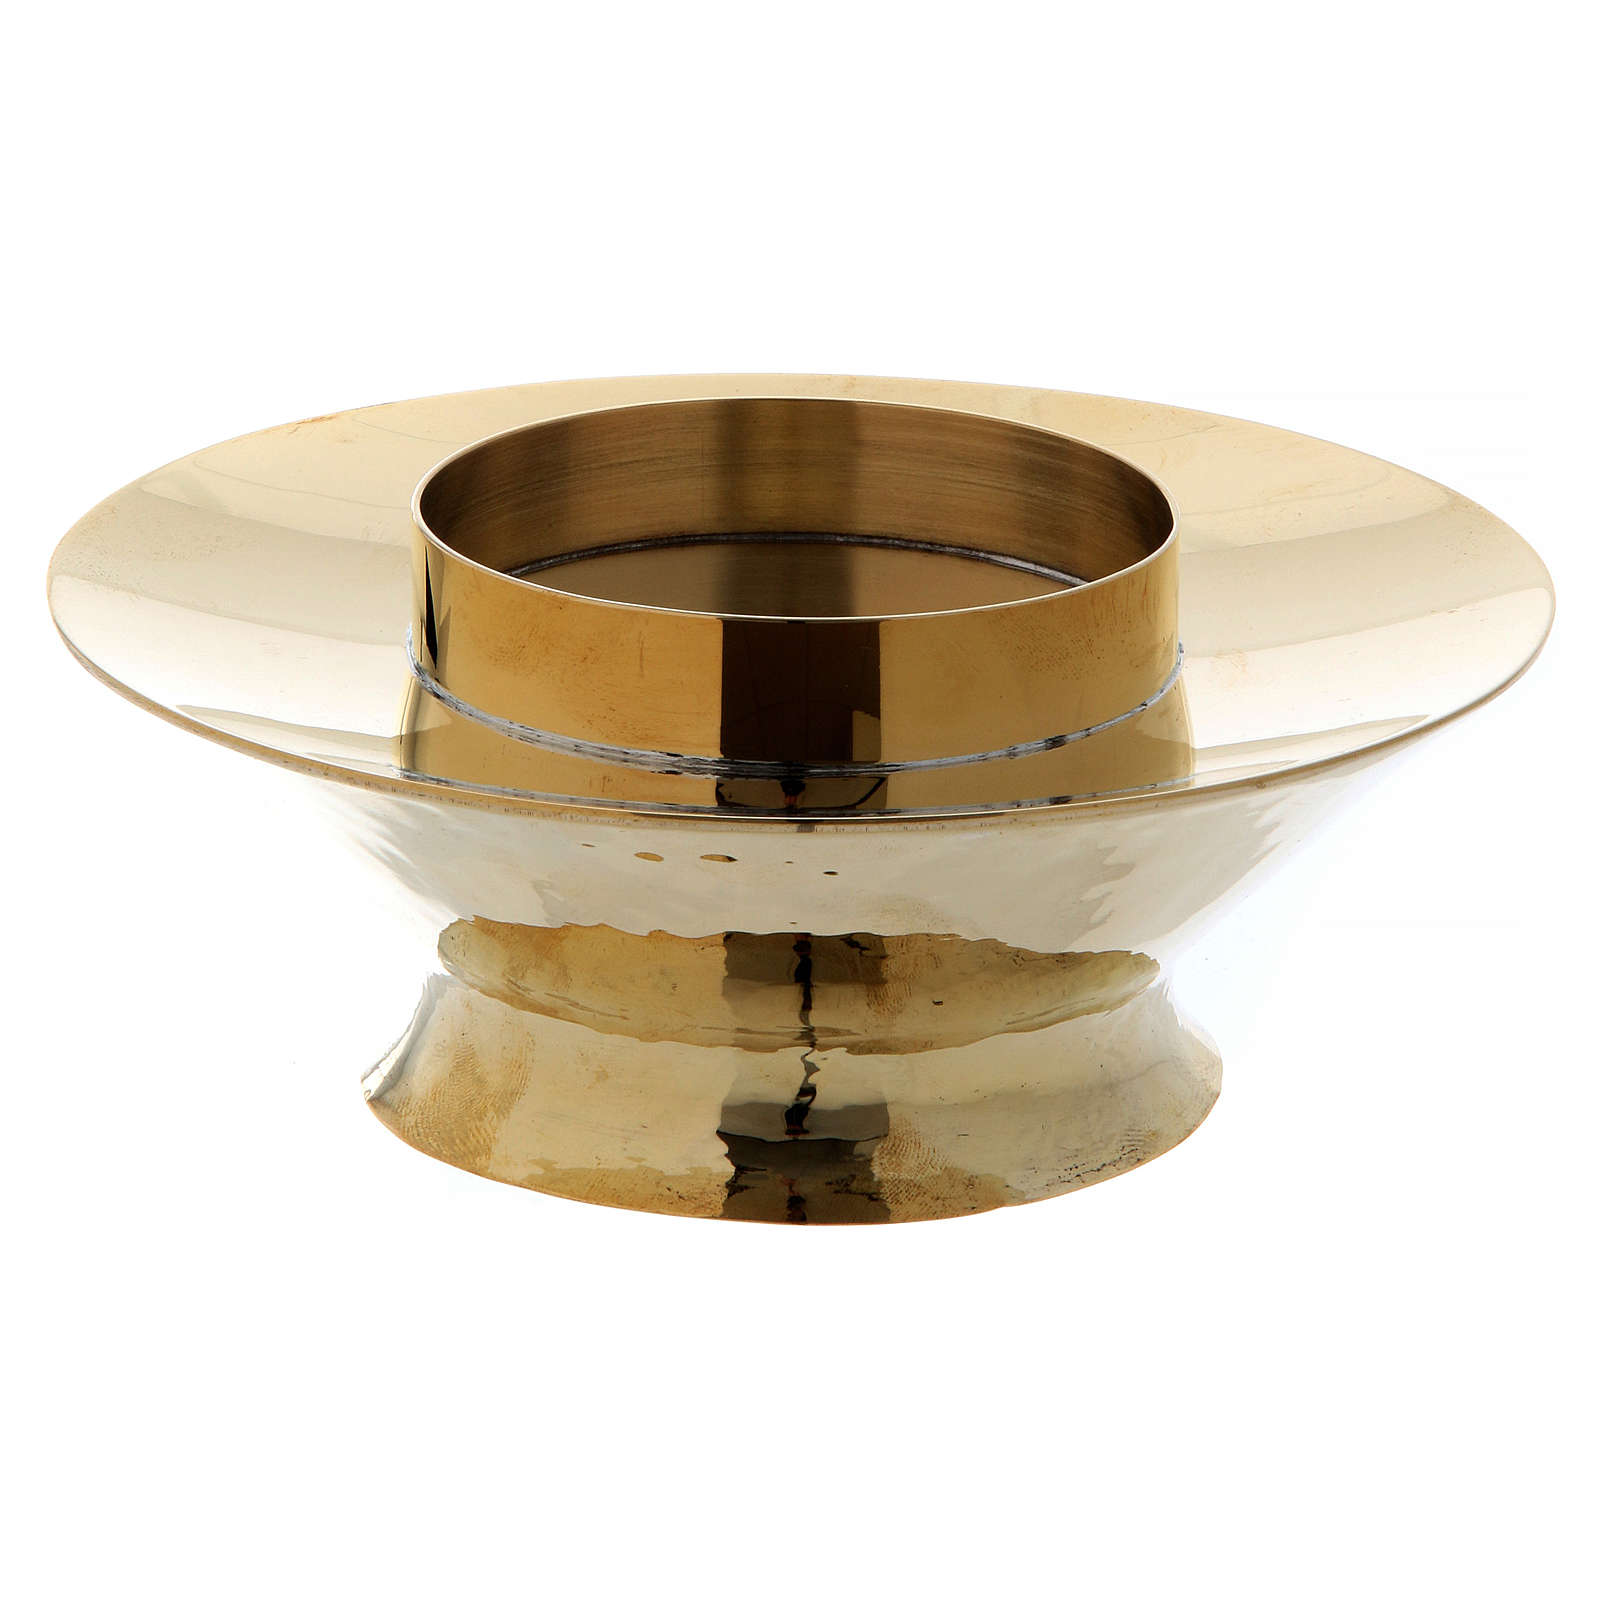 Tabernacle lamp in brass and glass Vitrum model 3